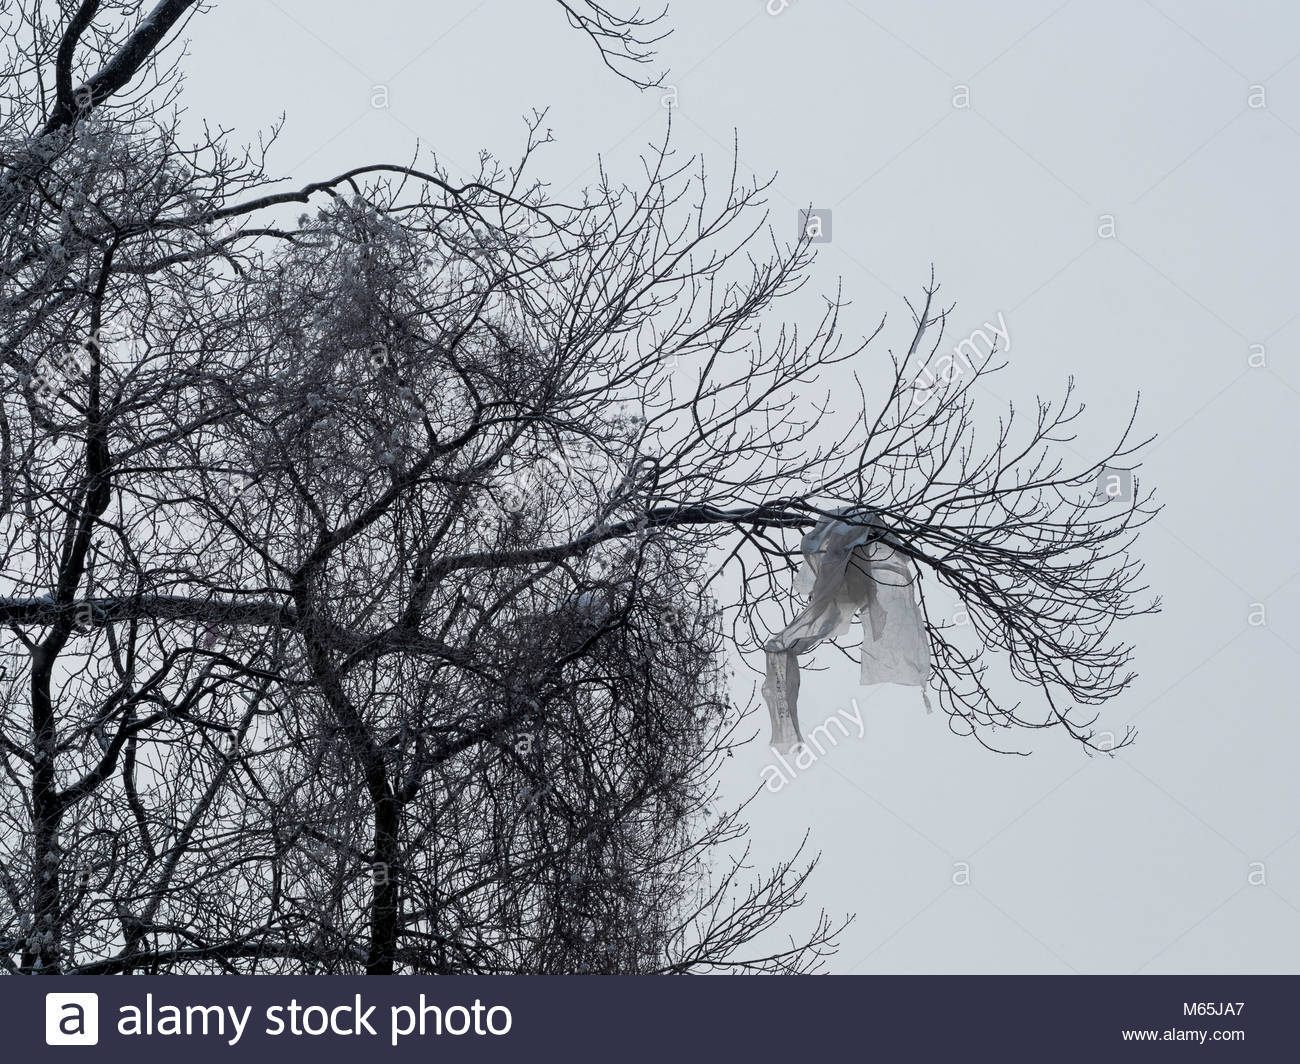 Plastic wrapping hanging in a tree - Stock Image